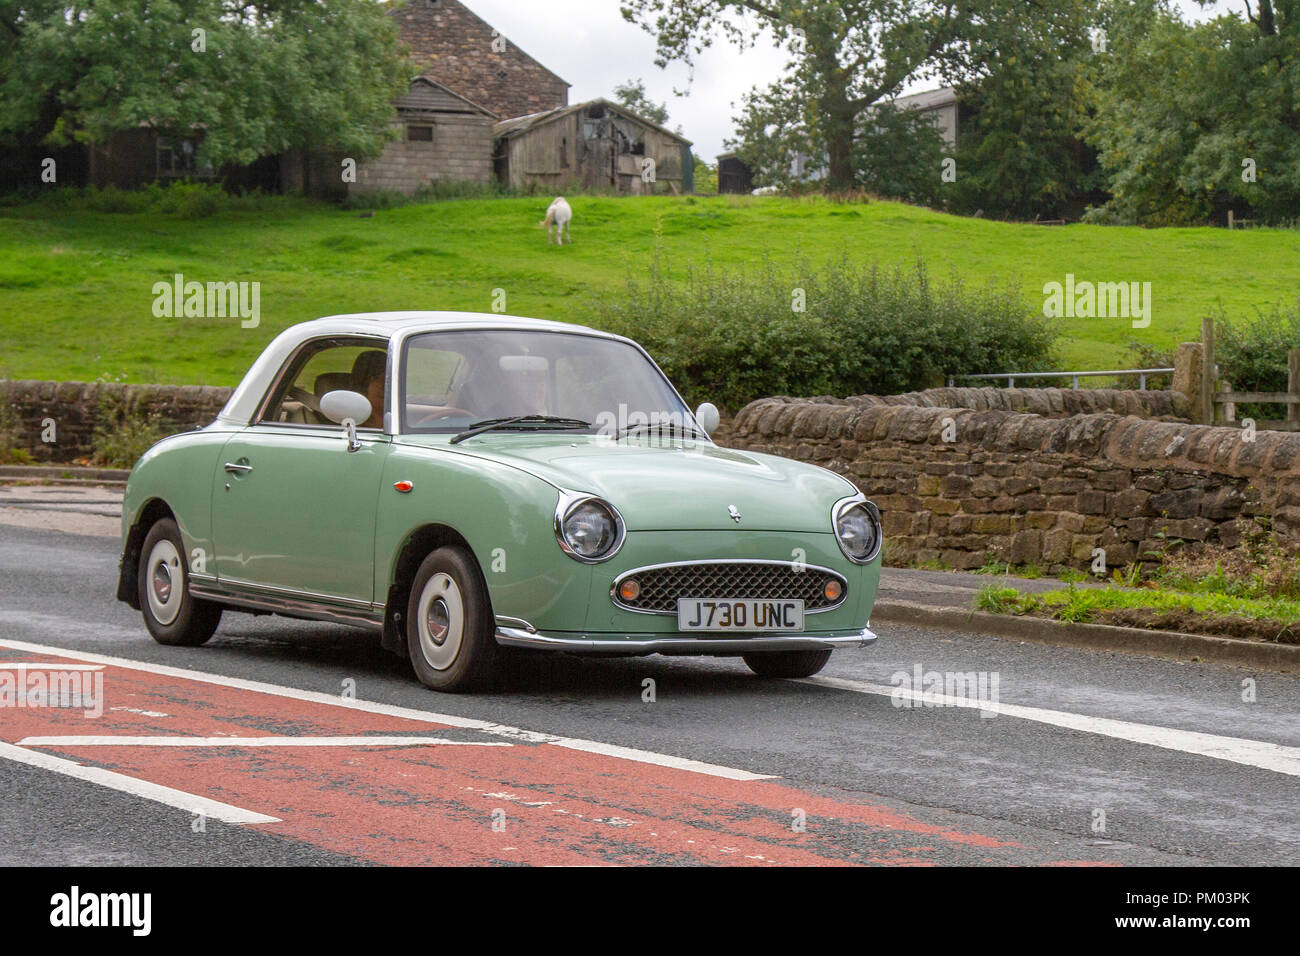 1991 green Nissan Classic, vintage, veteran, cars of yesteryear, restored collectibles at Hoghton Tower Class Cars Rally, UK - Stock Image